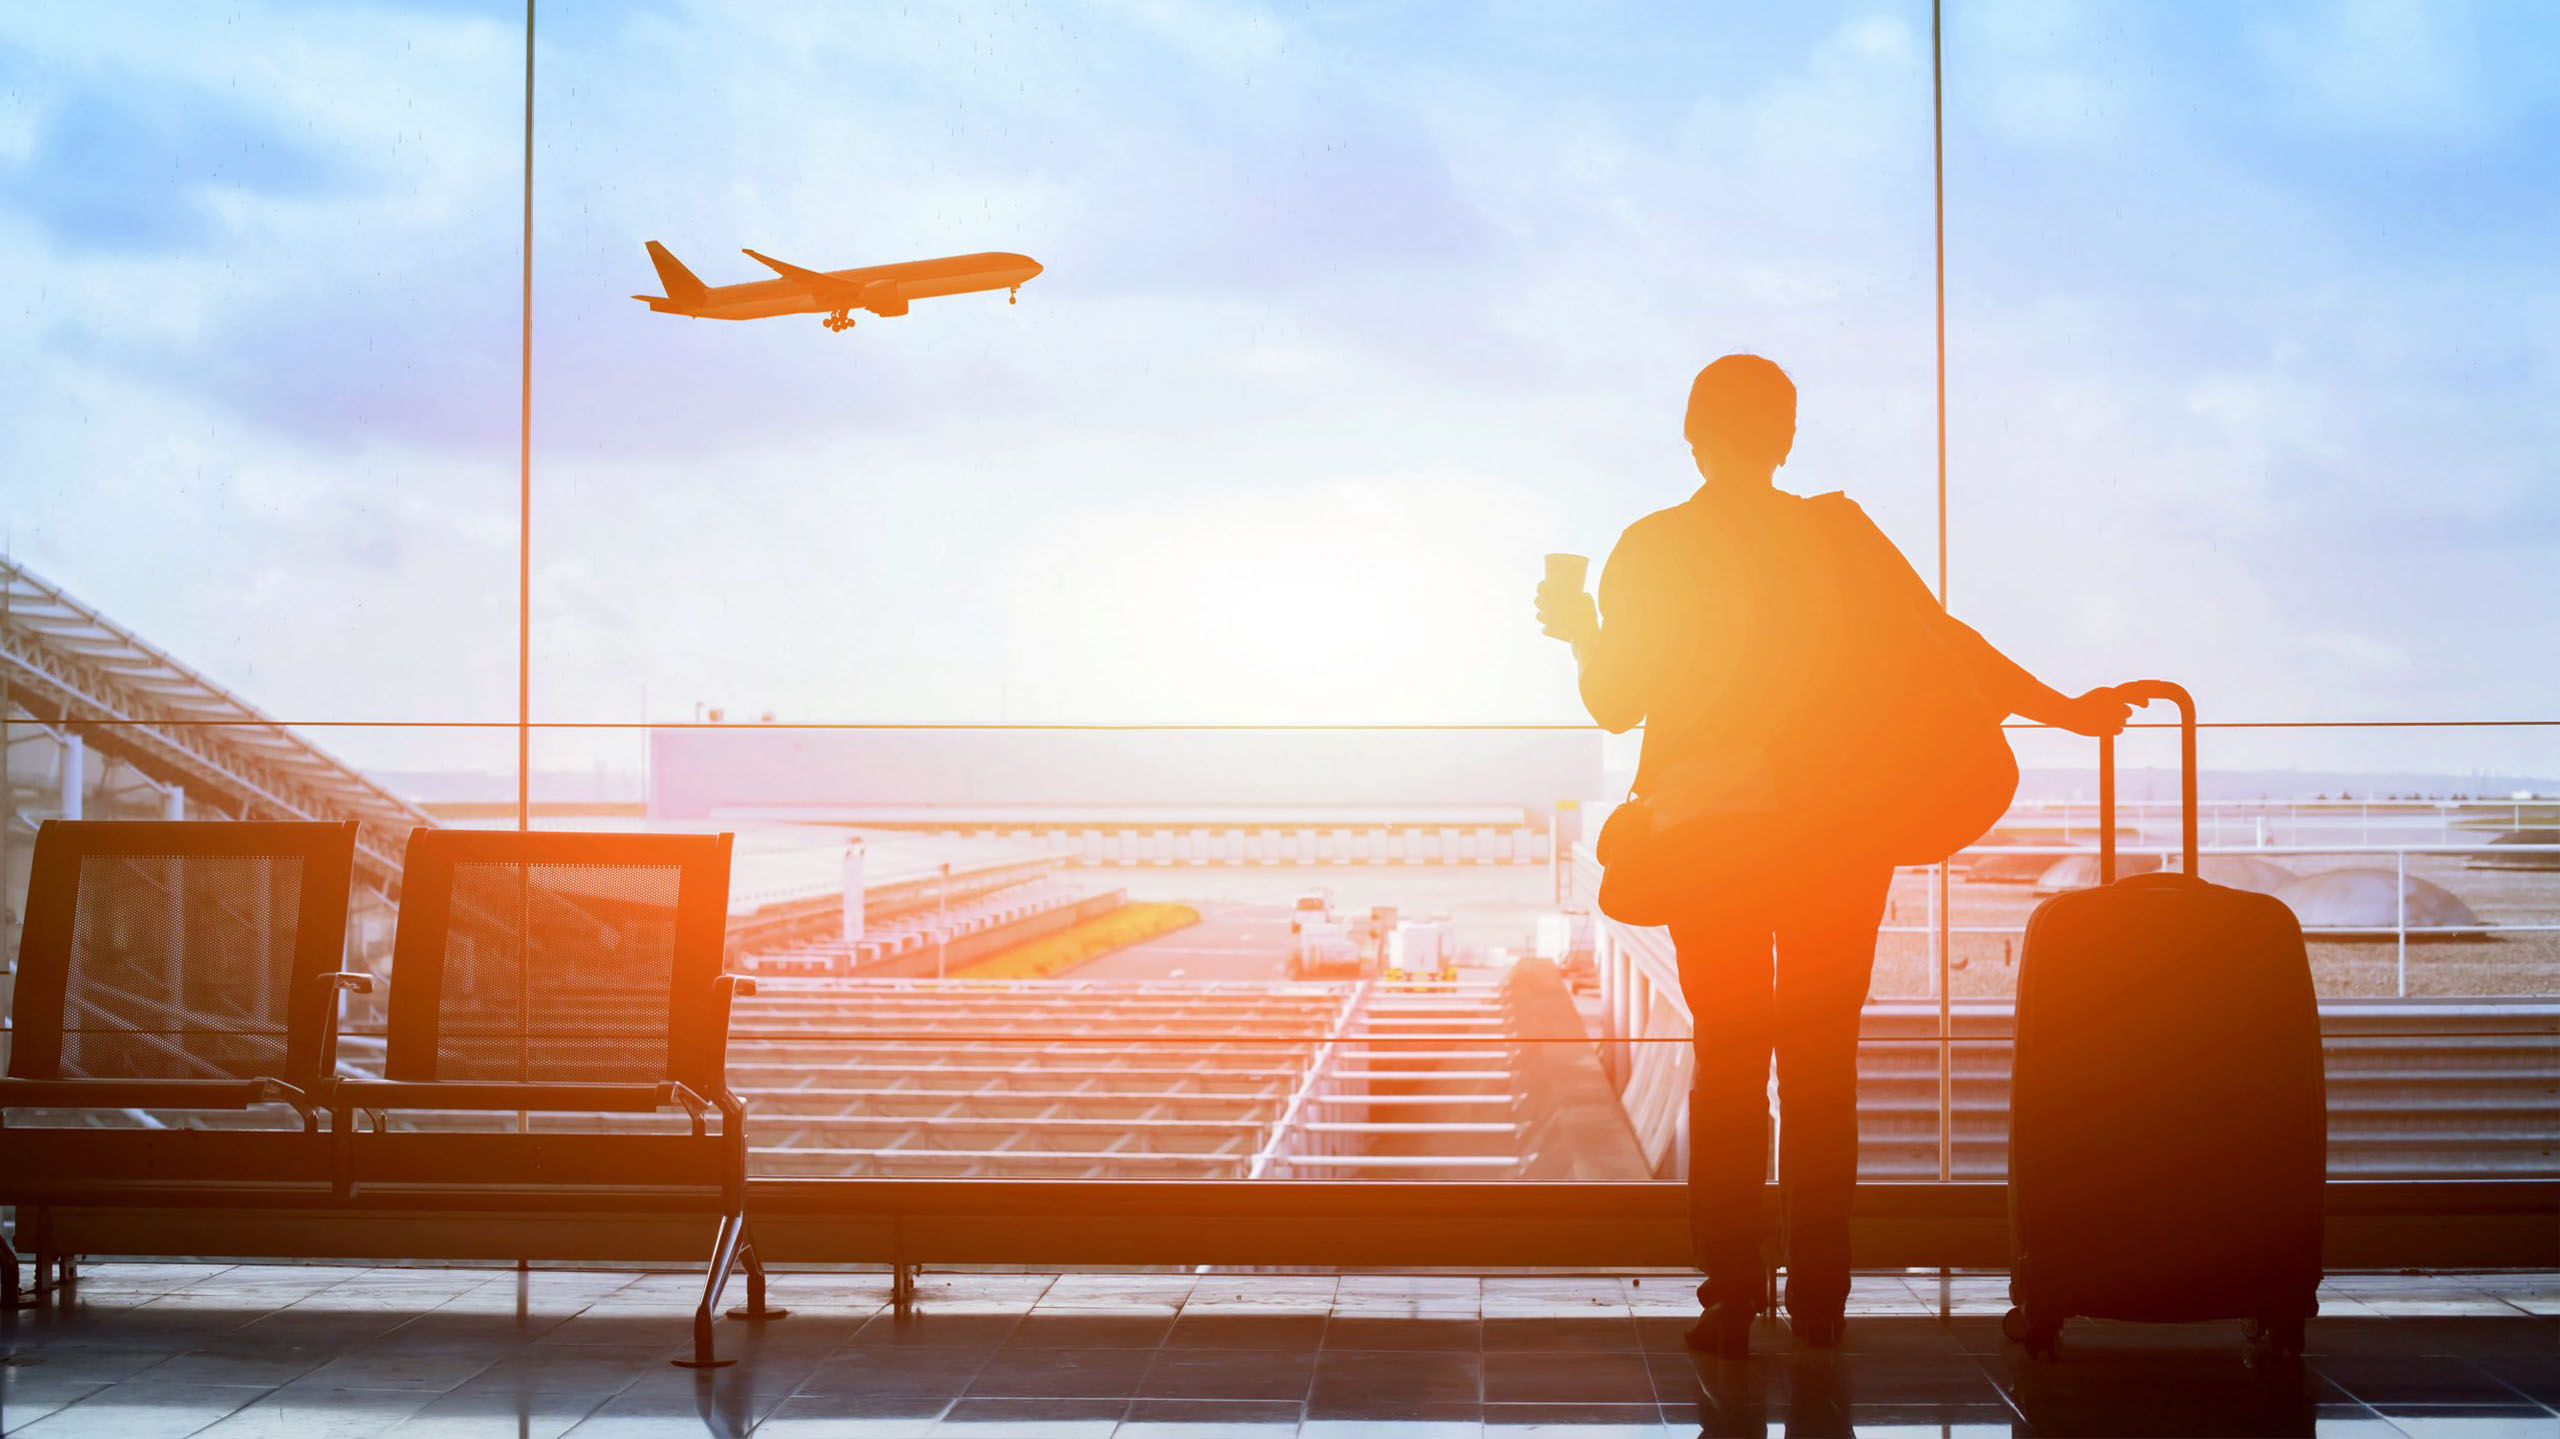 10 Ways to Make Your Next Business Trip Better